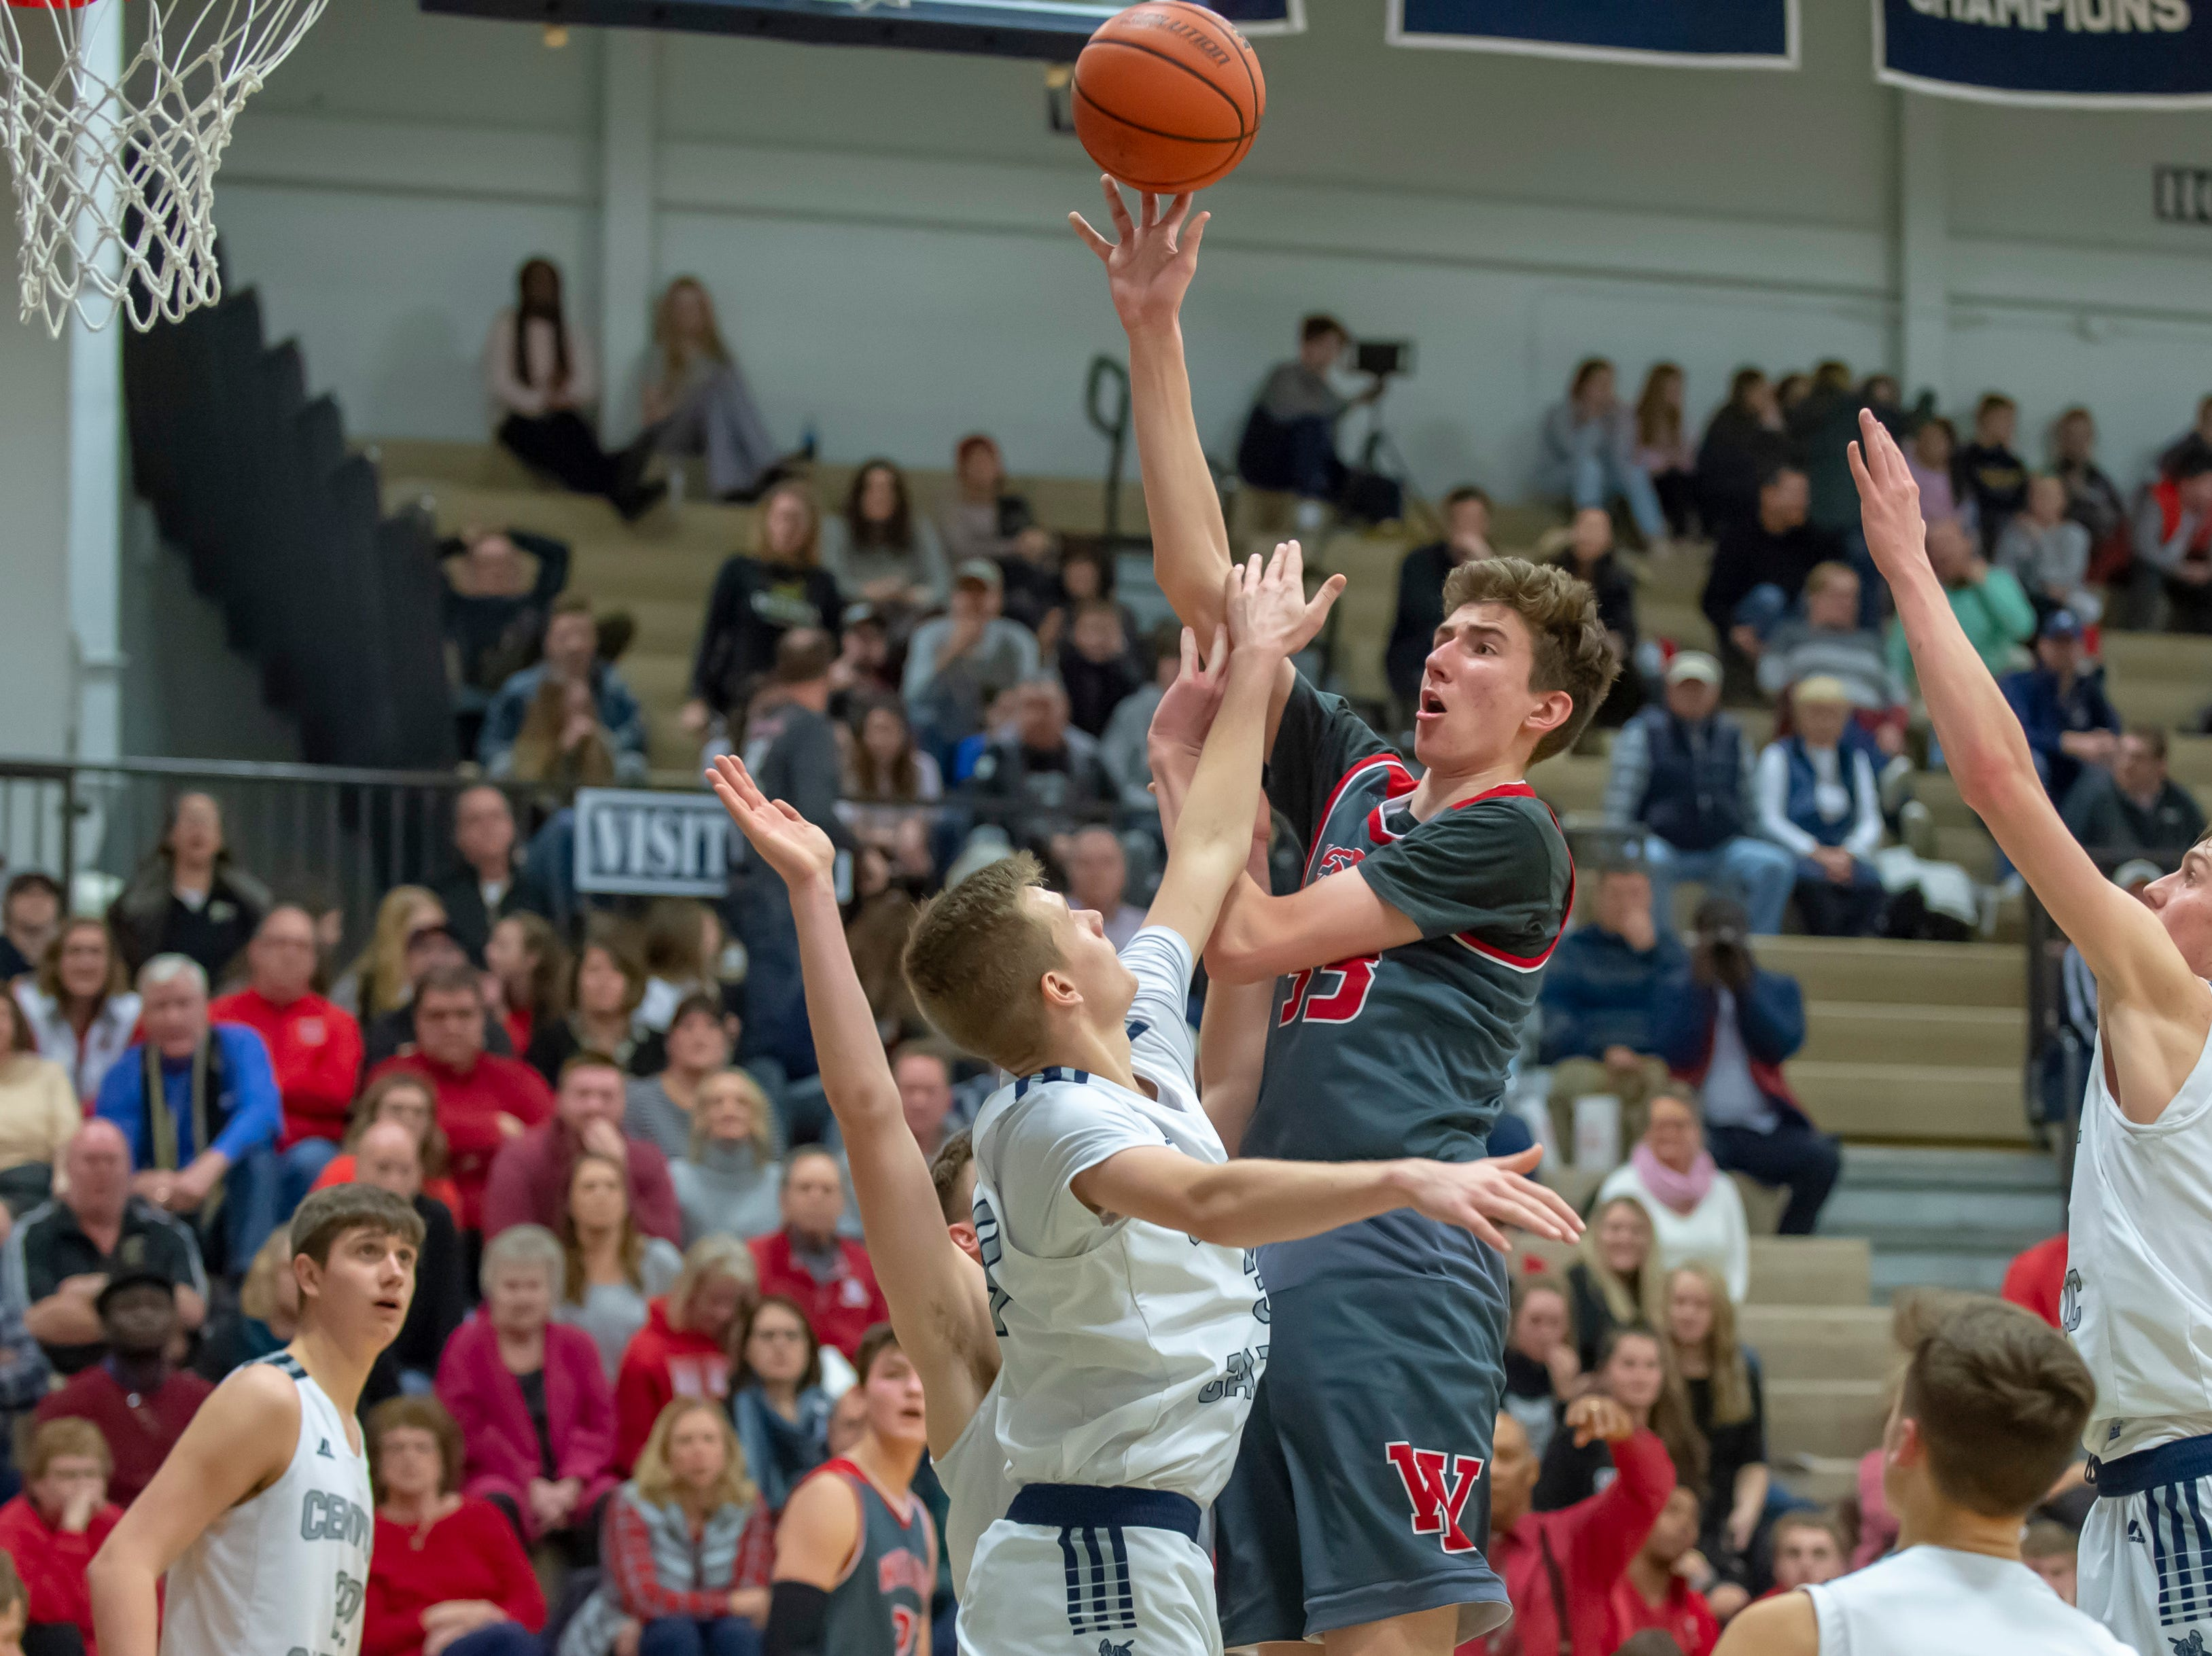 Rocco Muratori shoots from high above the West Lafayette at Central Catholic boys basketball rivalry game on 2/8/19